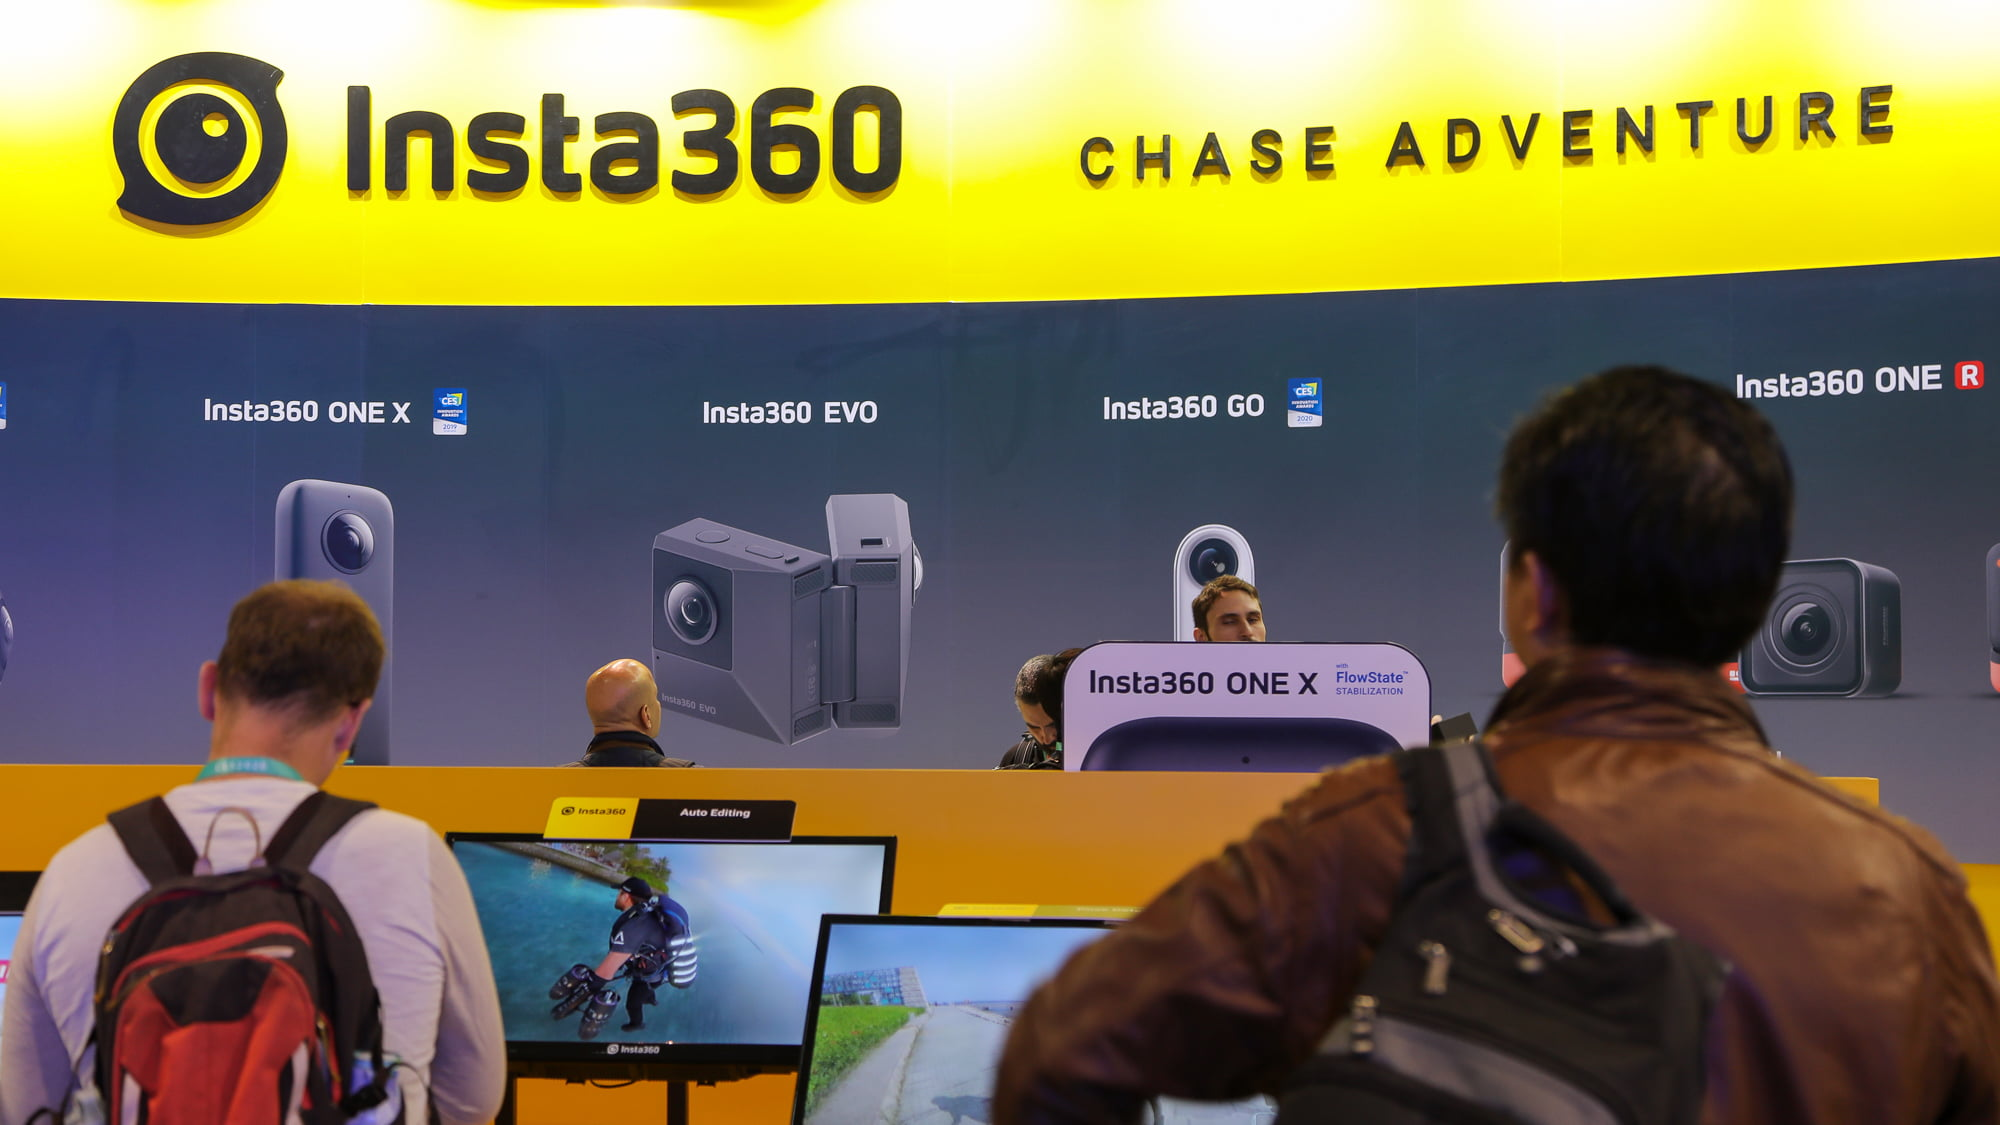 Insta360 booth at CES 2020